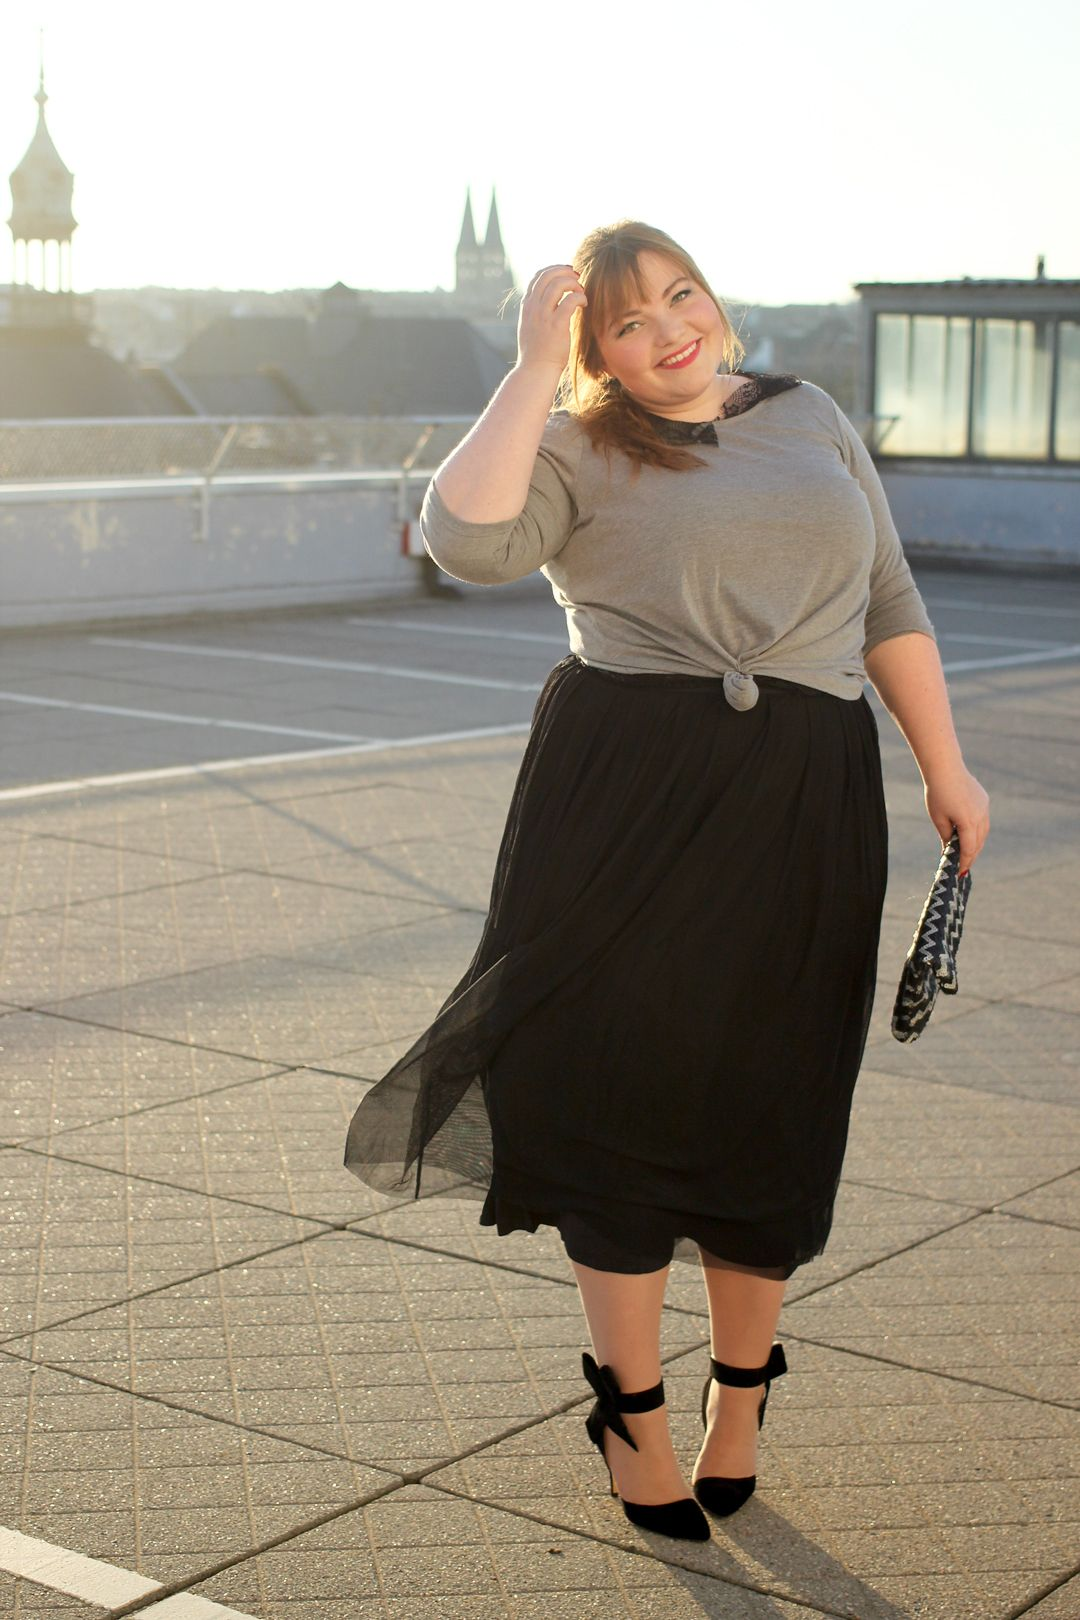 Party Outfit Für Mollige Zwei Weihnachtsoutfits Mit Happy Size Kathastrophal